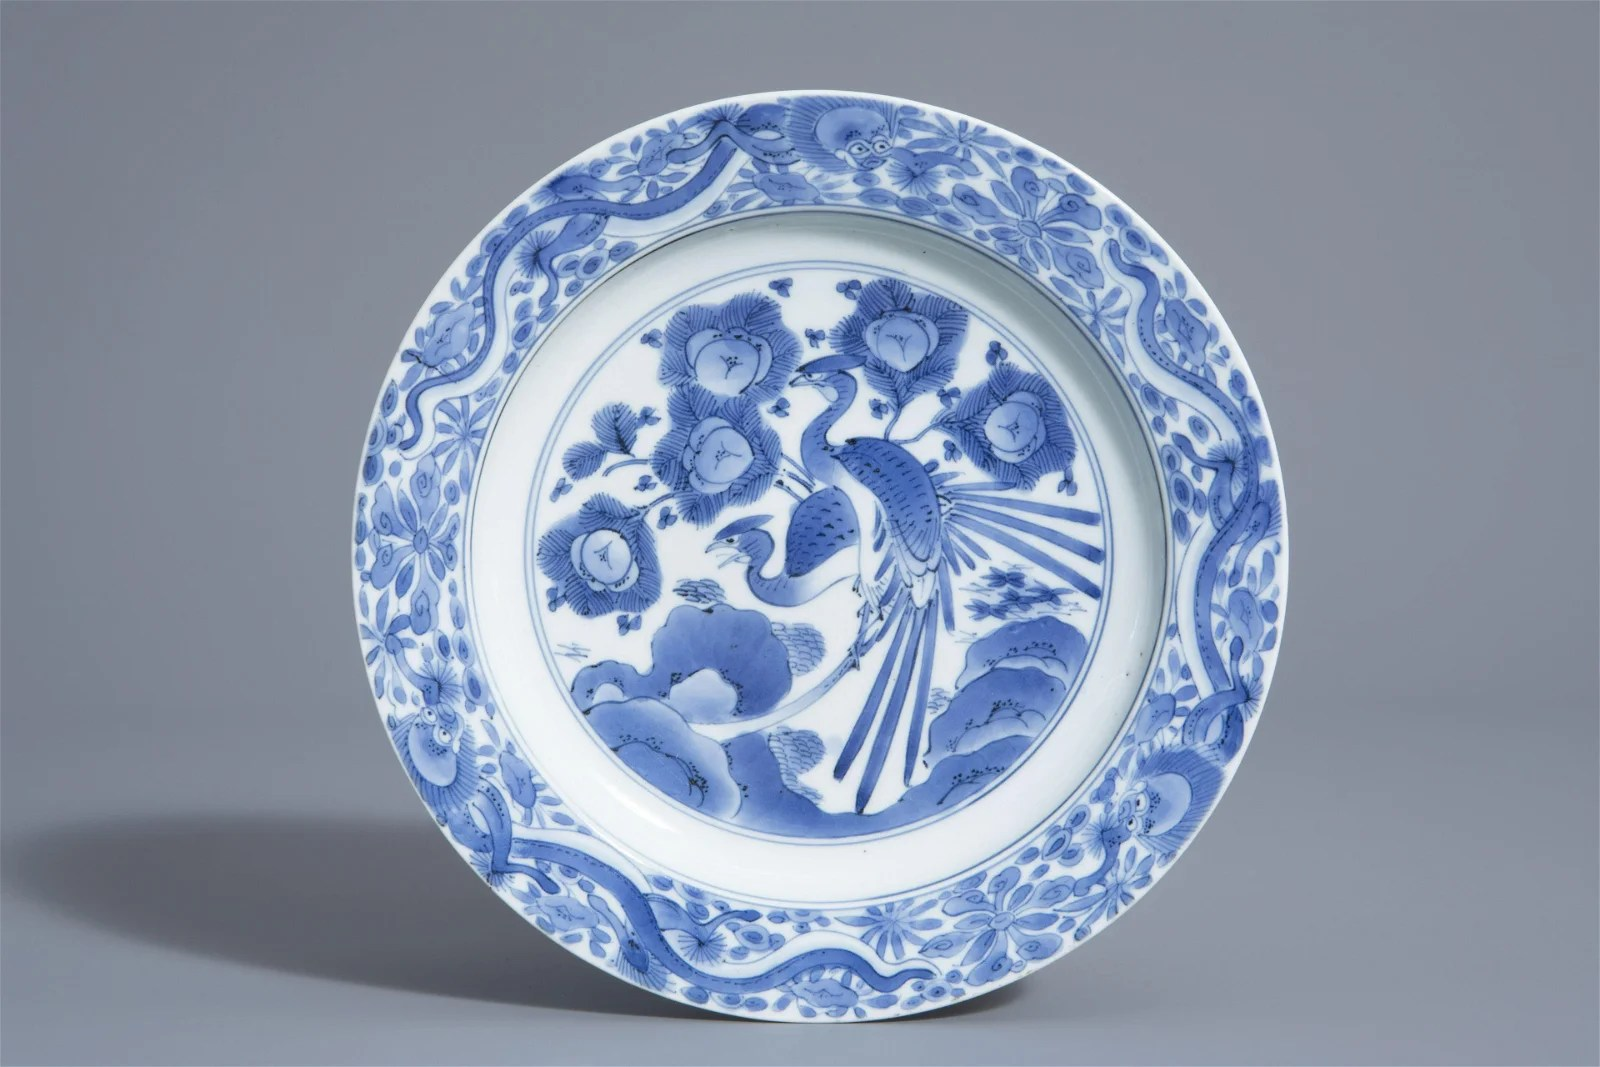 A Japanese blue and white plate with phoenixes on